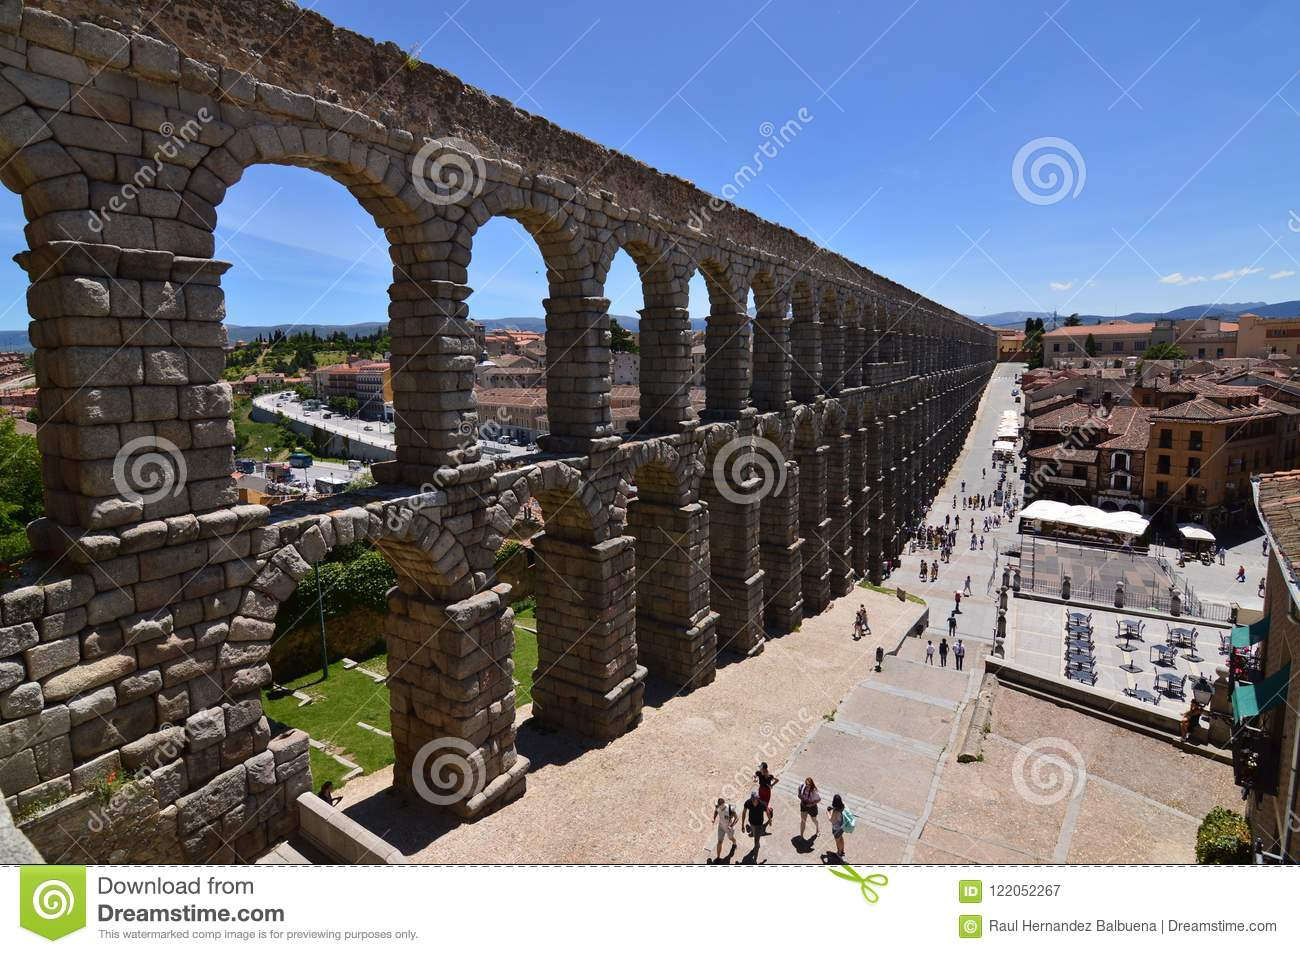 Oblique Side Shot Of The Aqueduct In Segovia. Architecture, Travel, History.